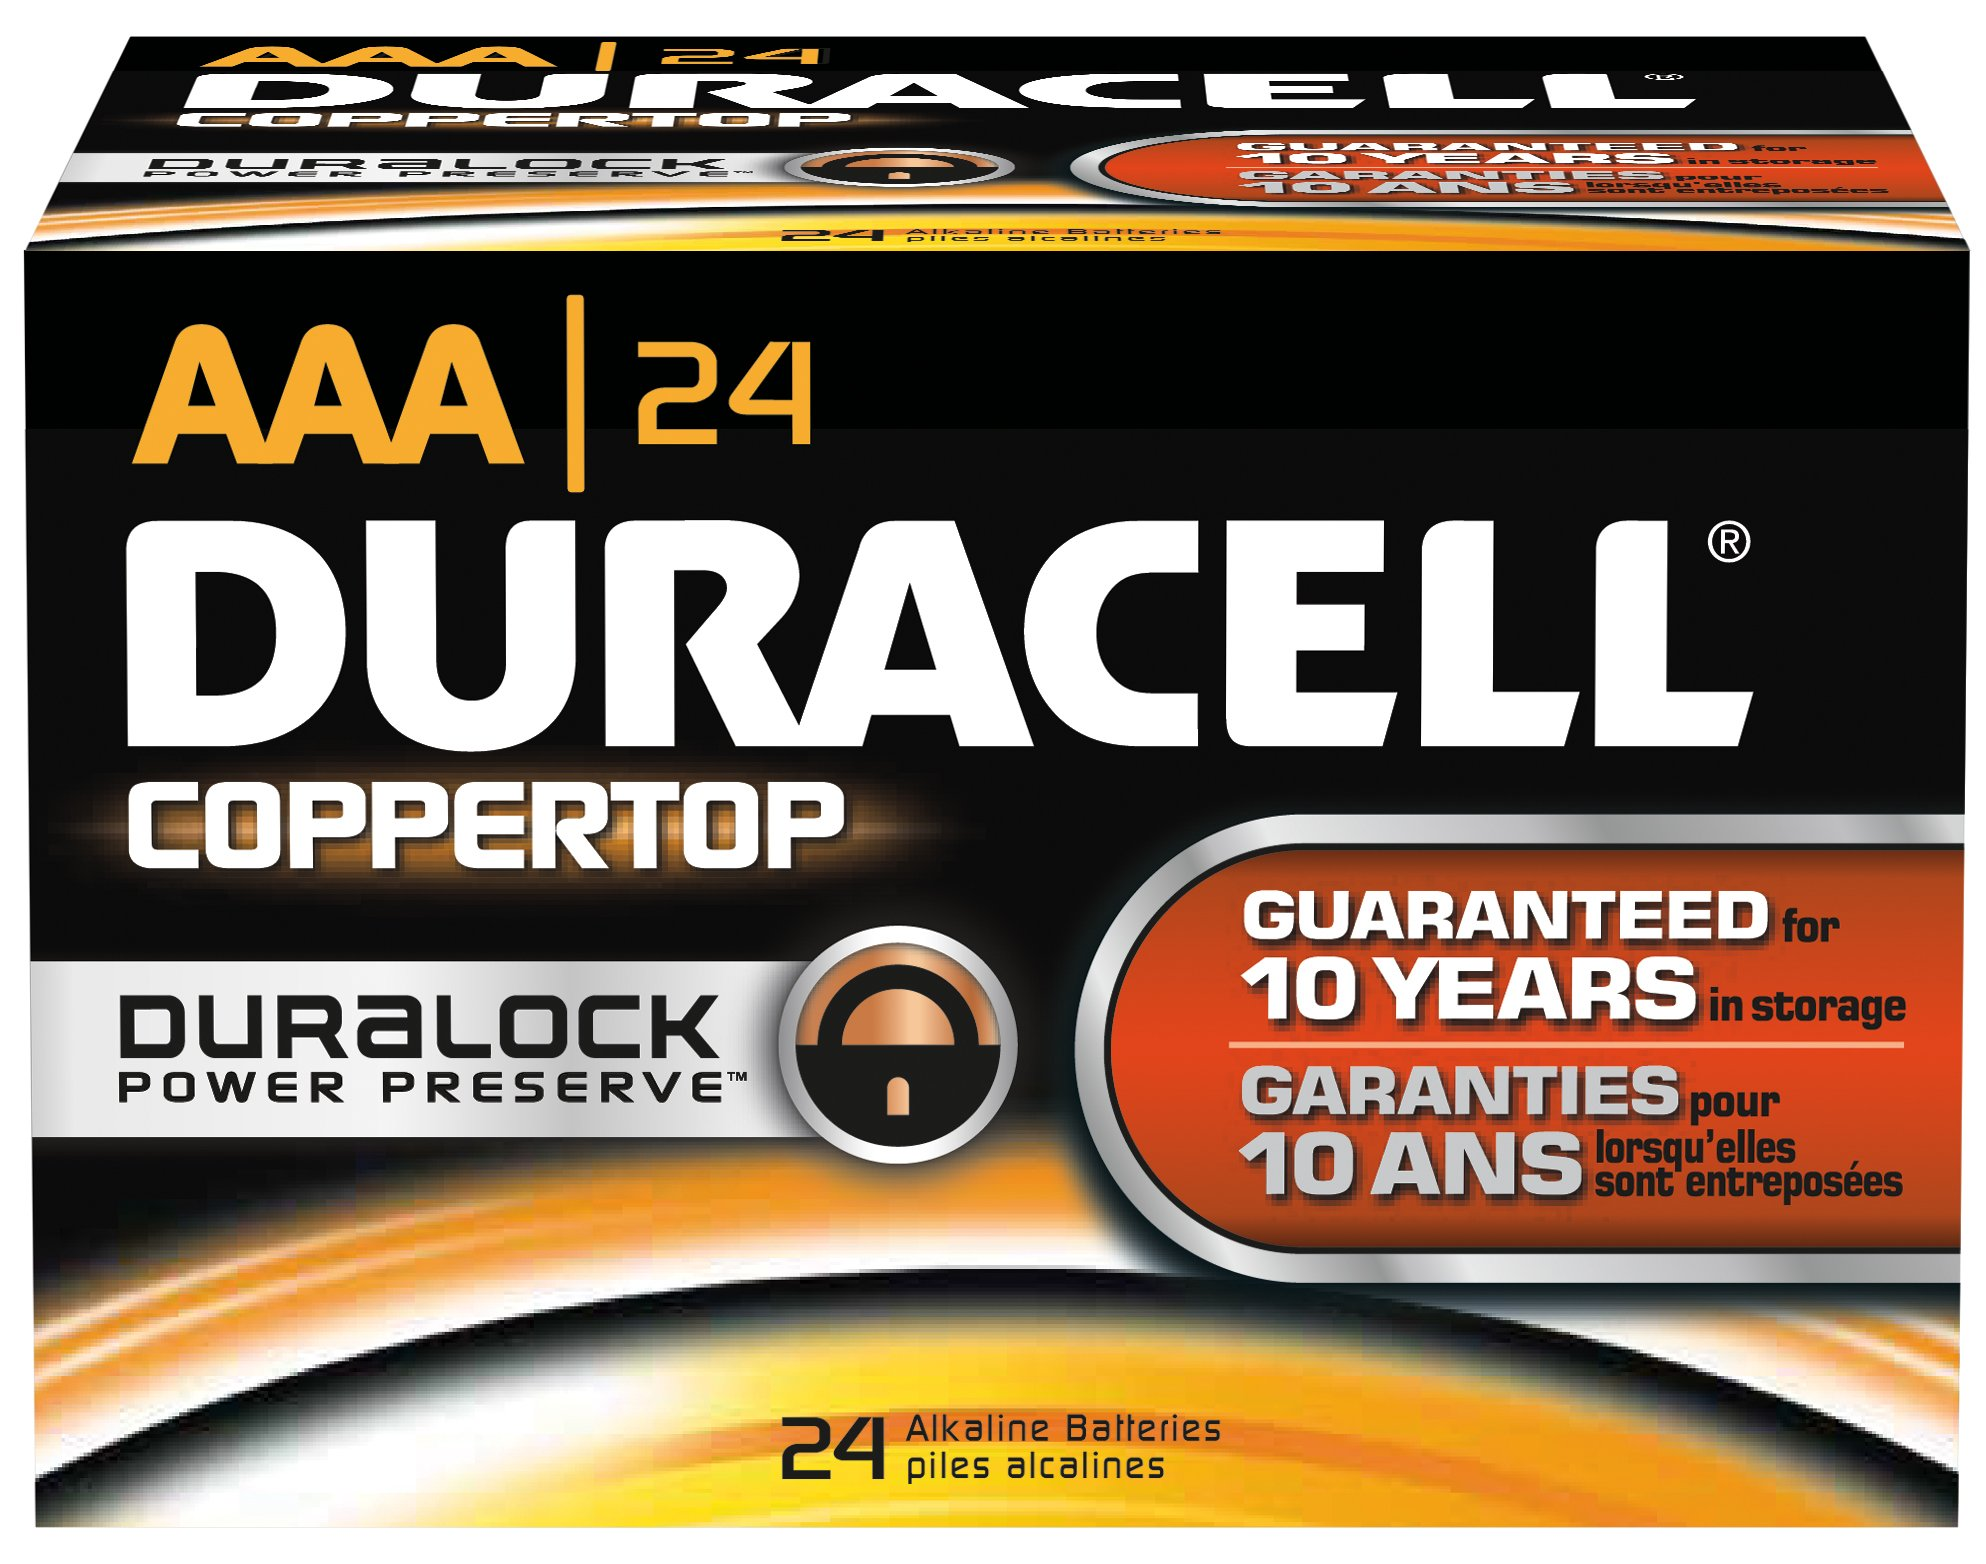 Duracell - CopperTop AAA Alkaline Batteries - long lasting, all-purpose Triple A battery for household and business - Pack of 24 by Duracell